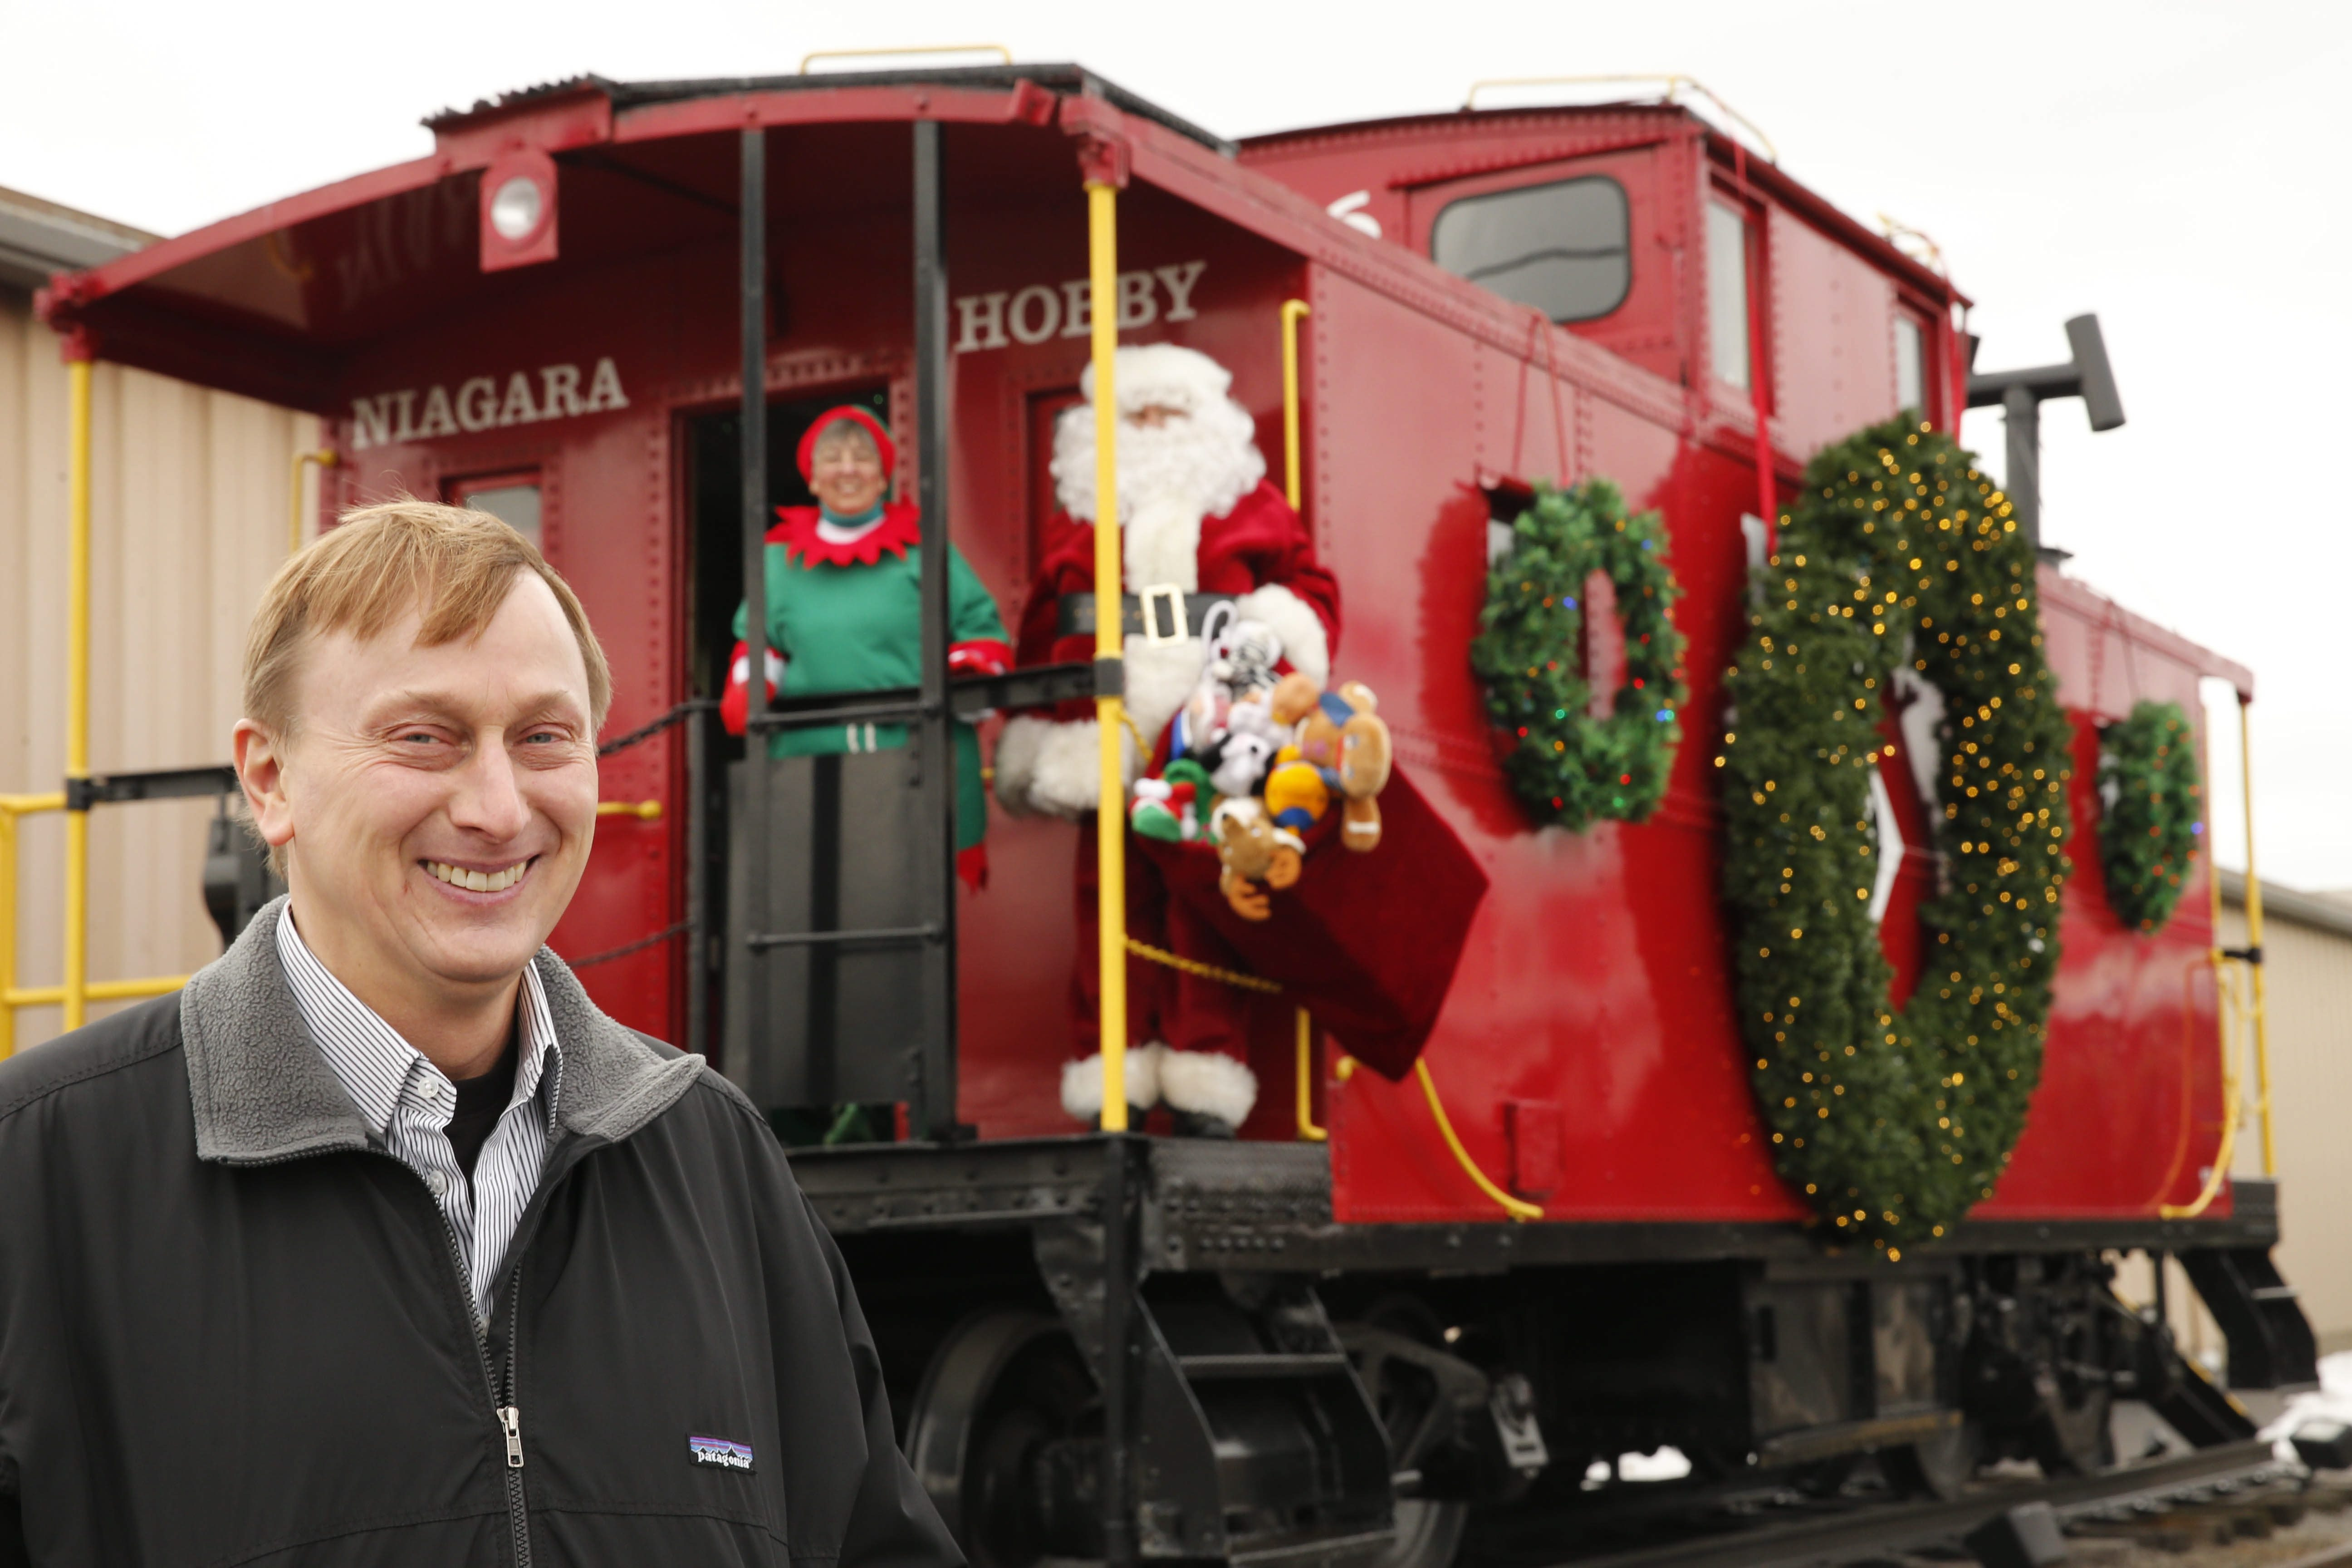 John S. Kavulich II, president of Niagara Hobby & Craft Mart, hosts Santa and an elf at the restored 1949 caboose outside the Cheektowaga store last week. Kavulich, who didn't share his father's interest in hobbies and crafts, is nevertheless preserving his legacy by making the store relevant to new customers.